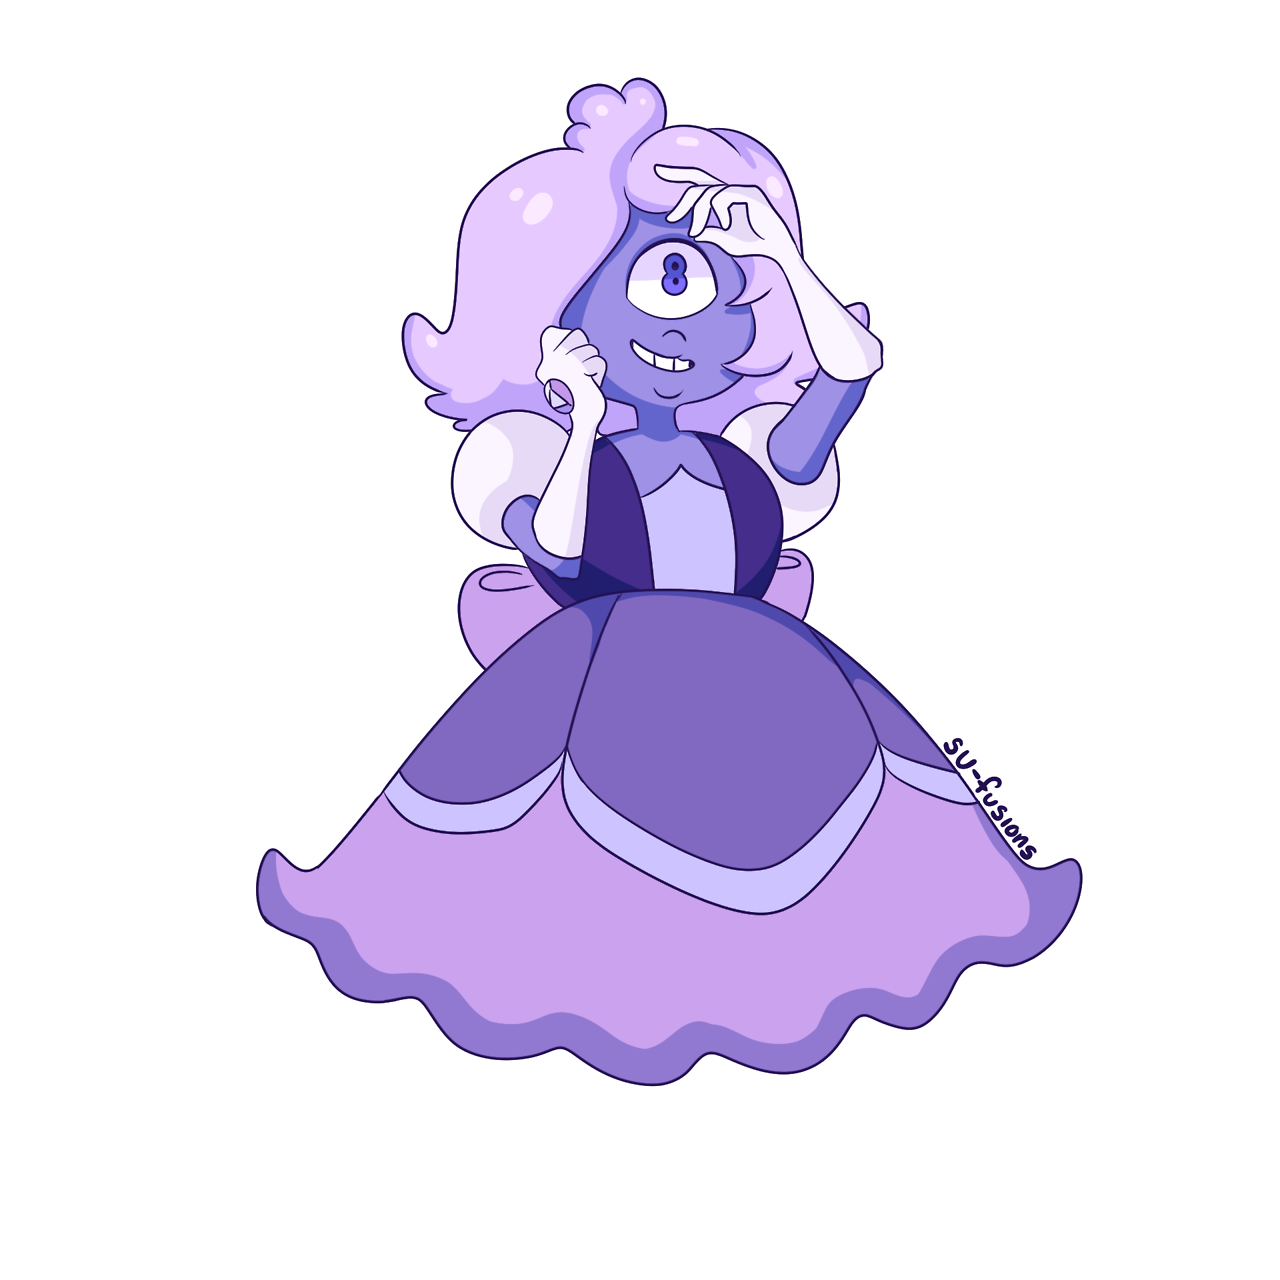 Purple Sapphire! Padparadscha Sapphire (my wife) fused with CG Sapphire = this beauty! Requested by @retrocognitive-sapphire! ooooooo I love her so much!!! Bonus: